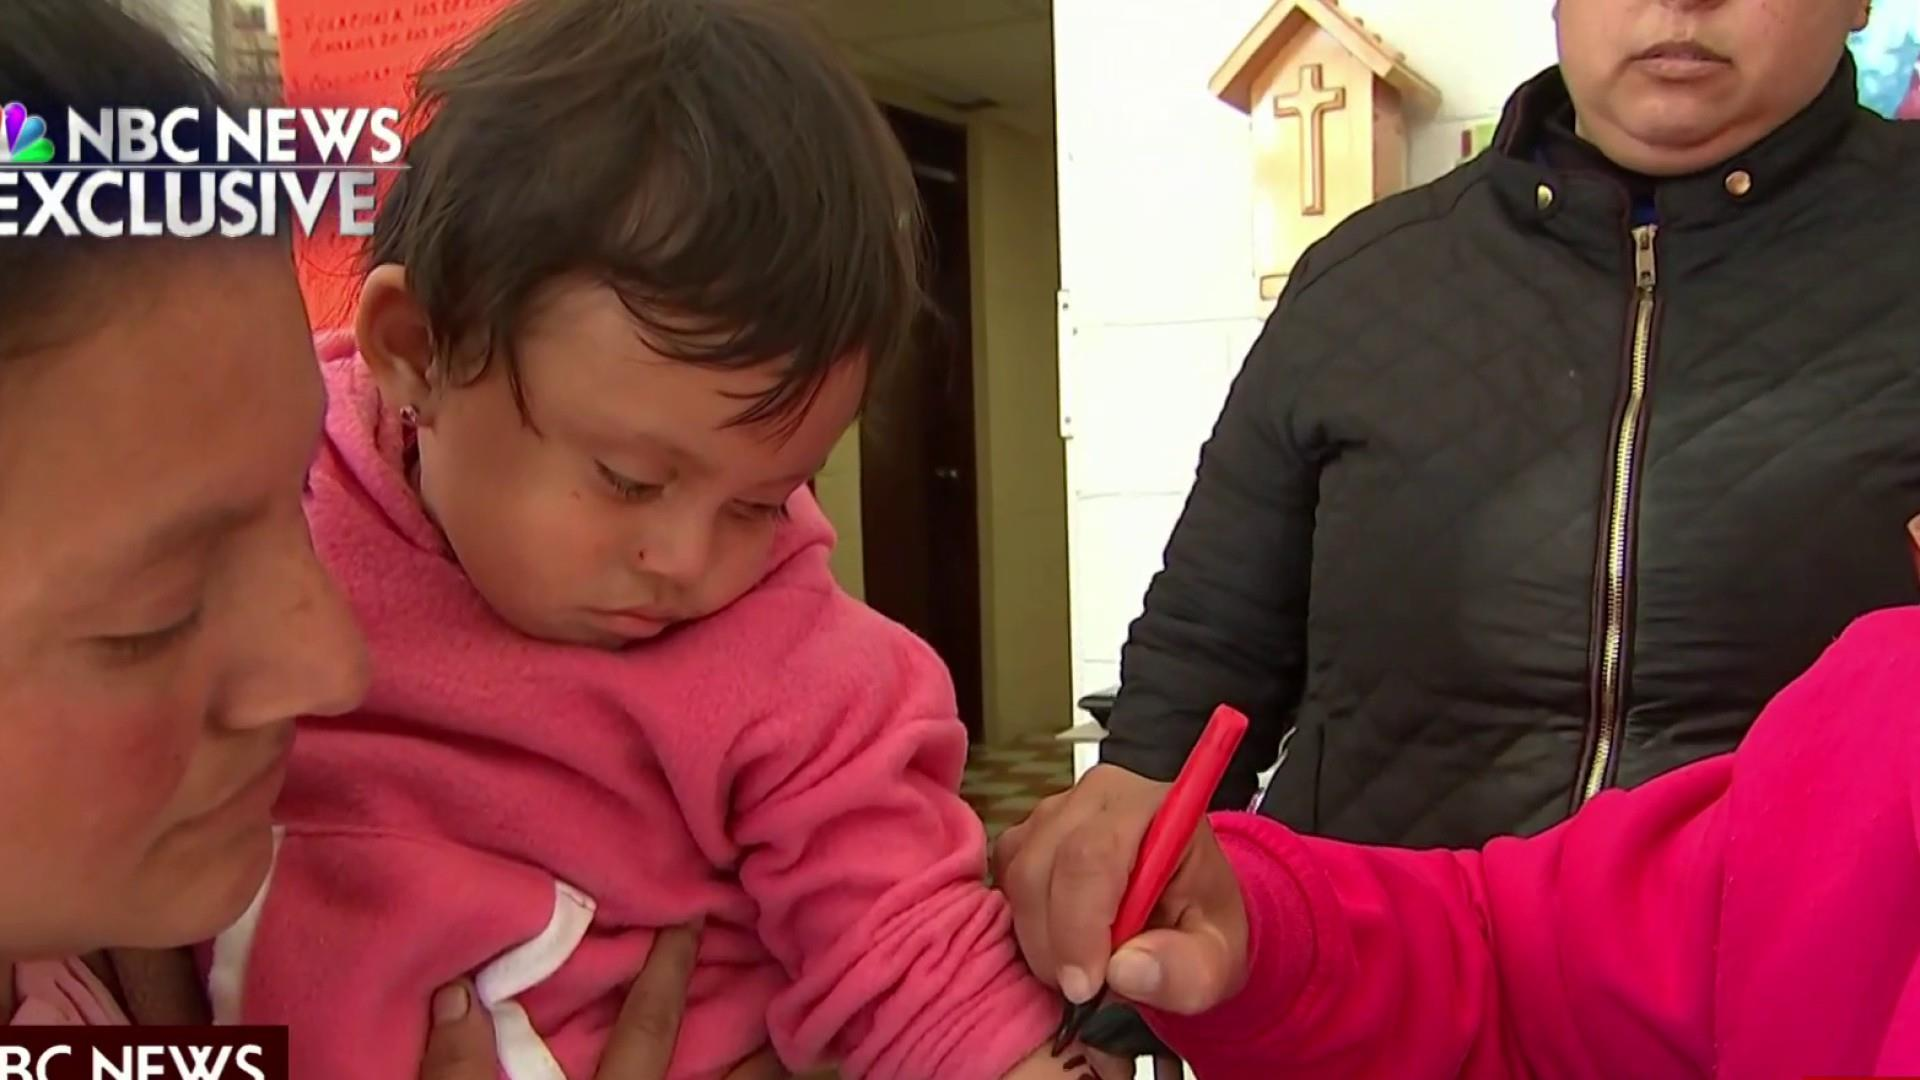 Migrant children with numbers on arms wait to cross border